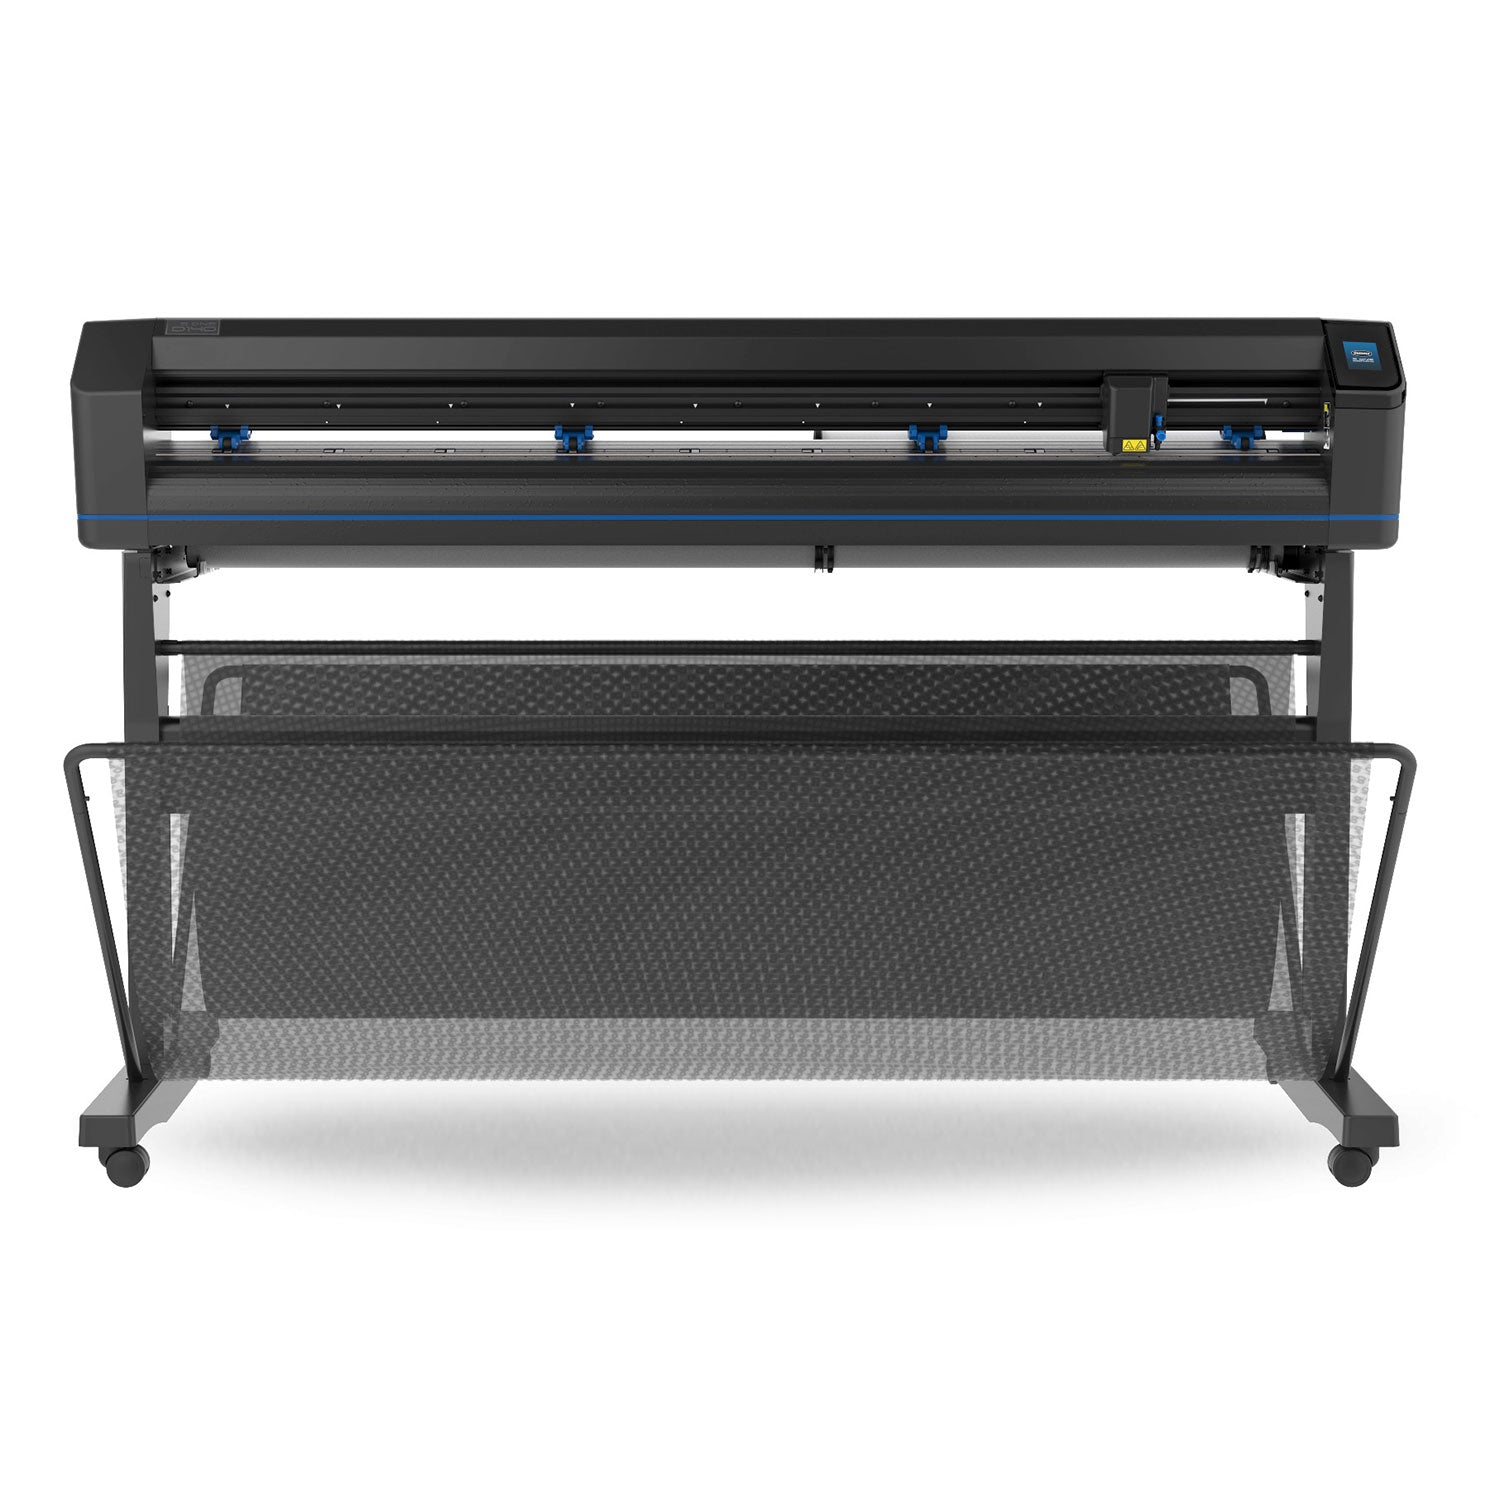 Summa S One D140 Vinyl Cutter